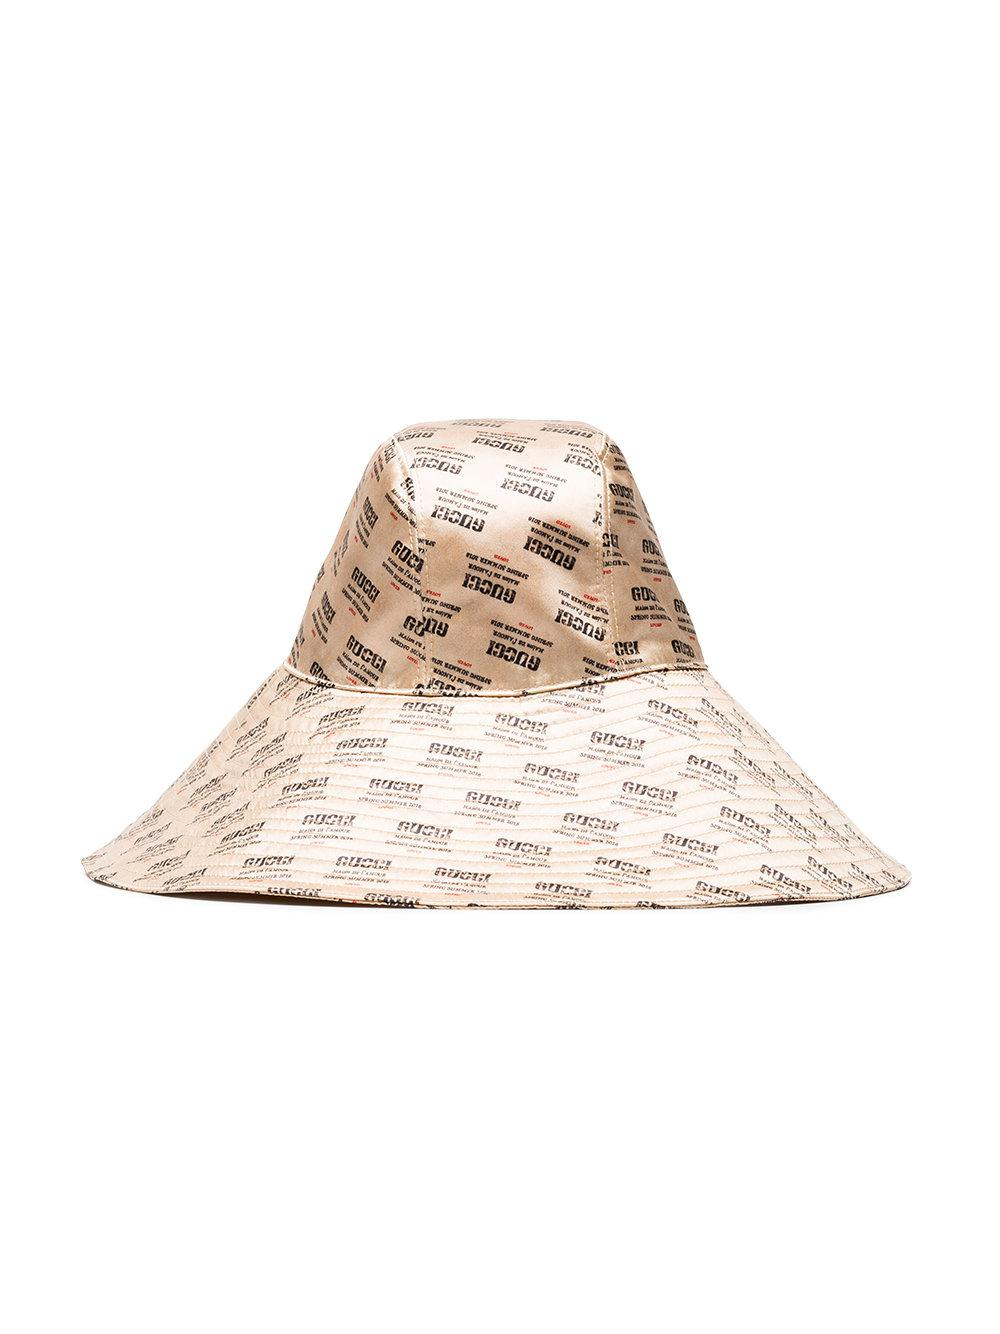 a8709c74b5b ... buying now 41a3d 0594b Gucci Ivory Invite Print Silk Hat in Natural -  Lyst ...